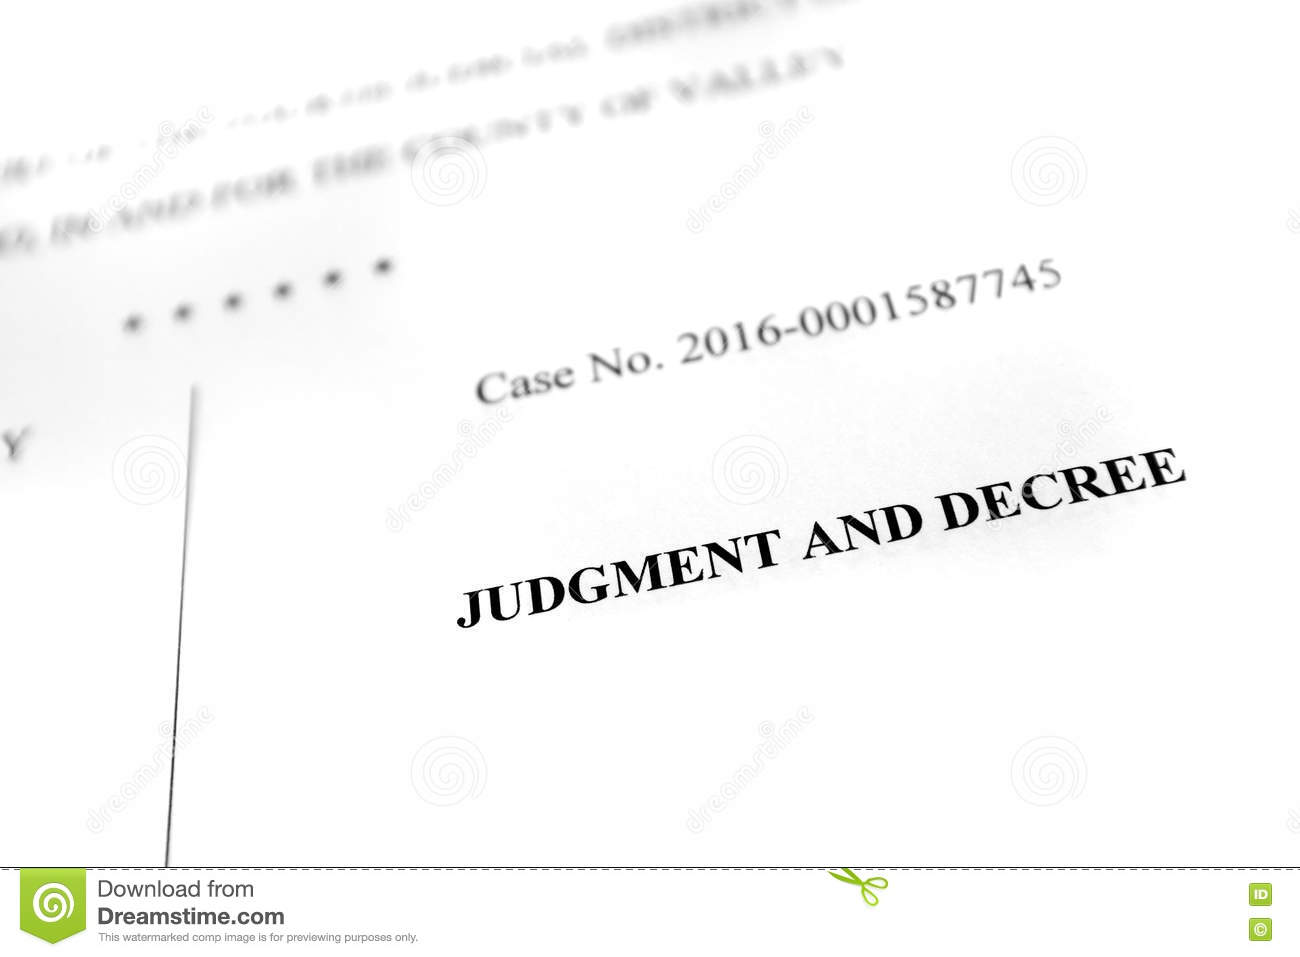 legal papers complaint judgment and decree stock image image of